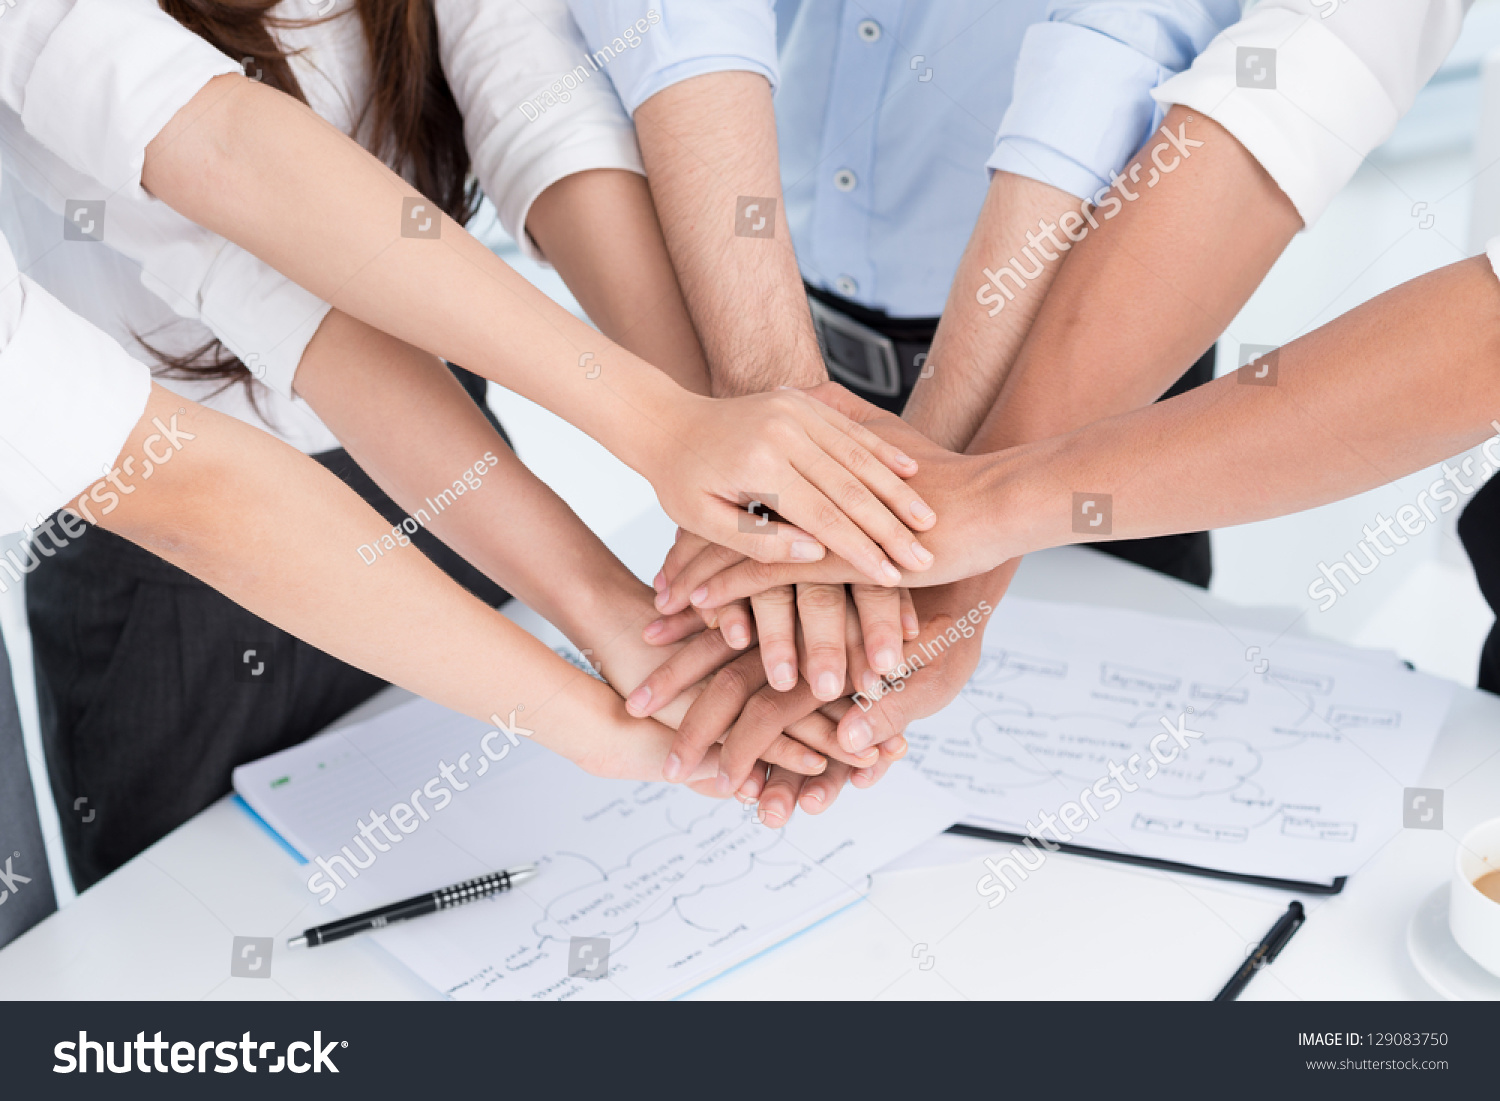 graduate goals essay Graduate school - statement graduate and professional schools for the essay completely of your graduate study include your career goals and.